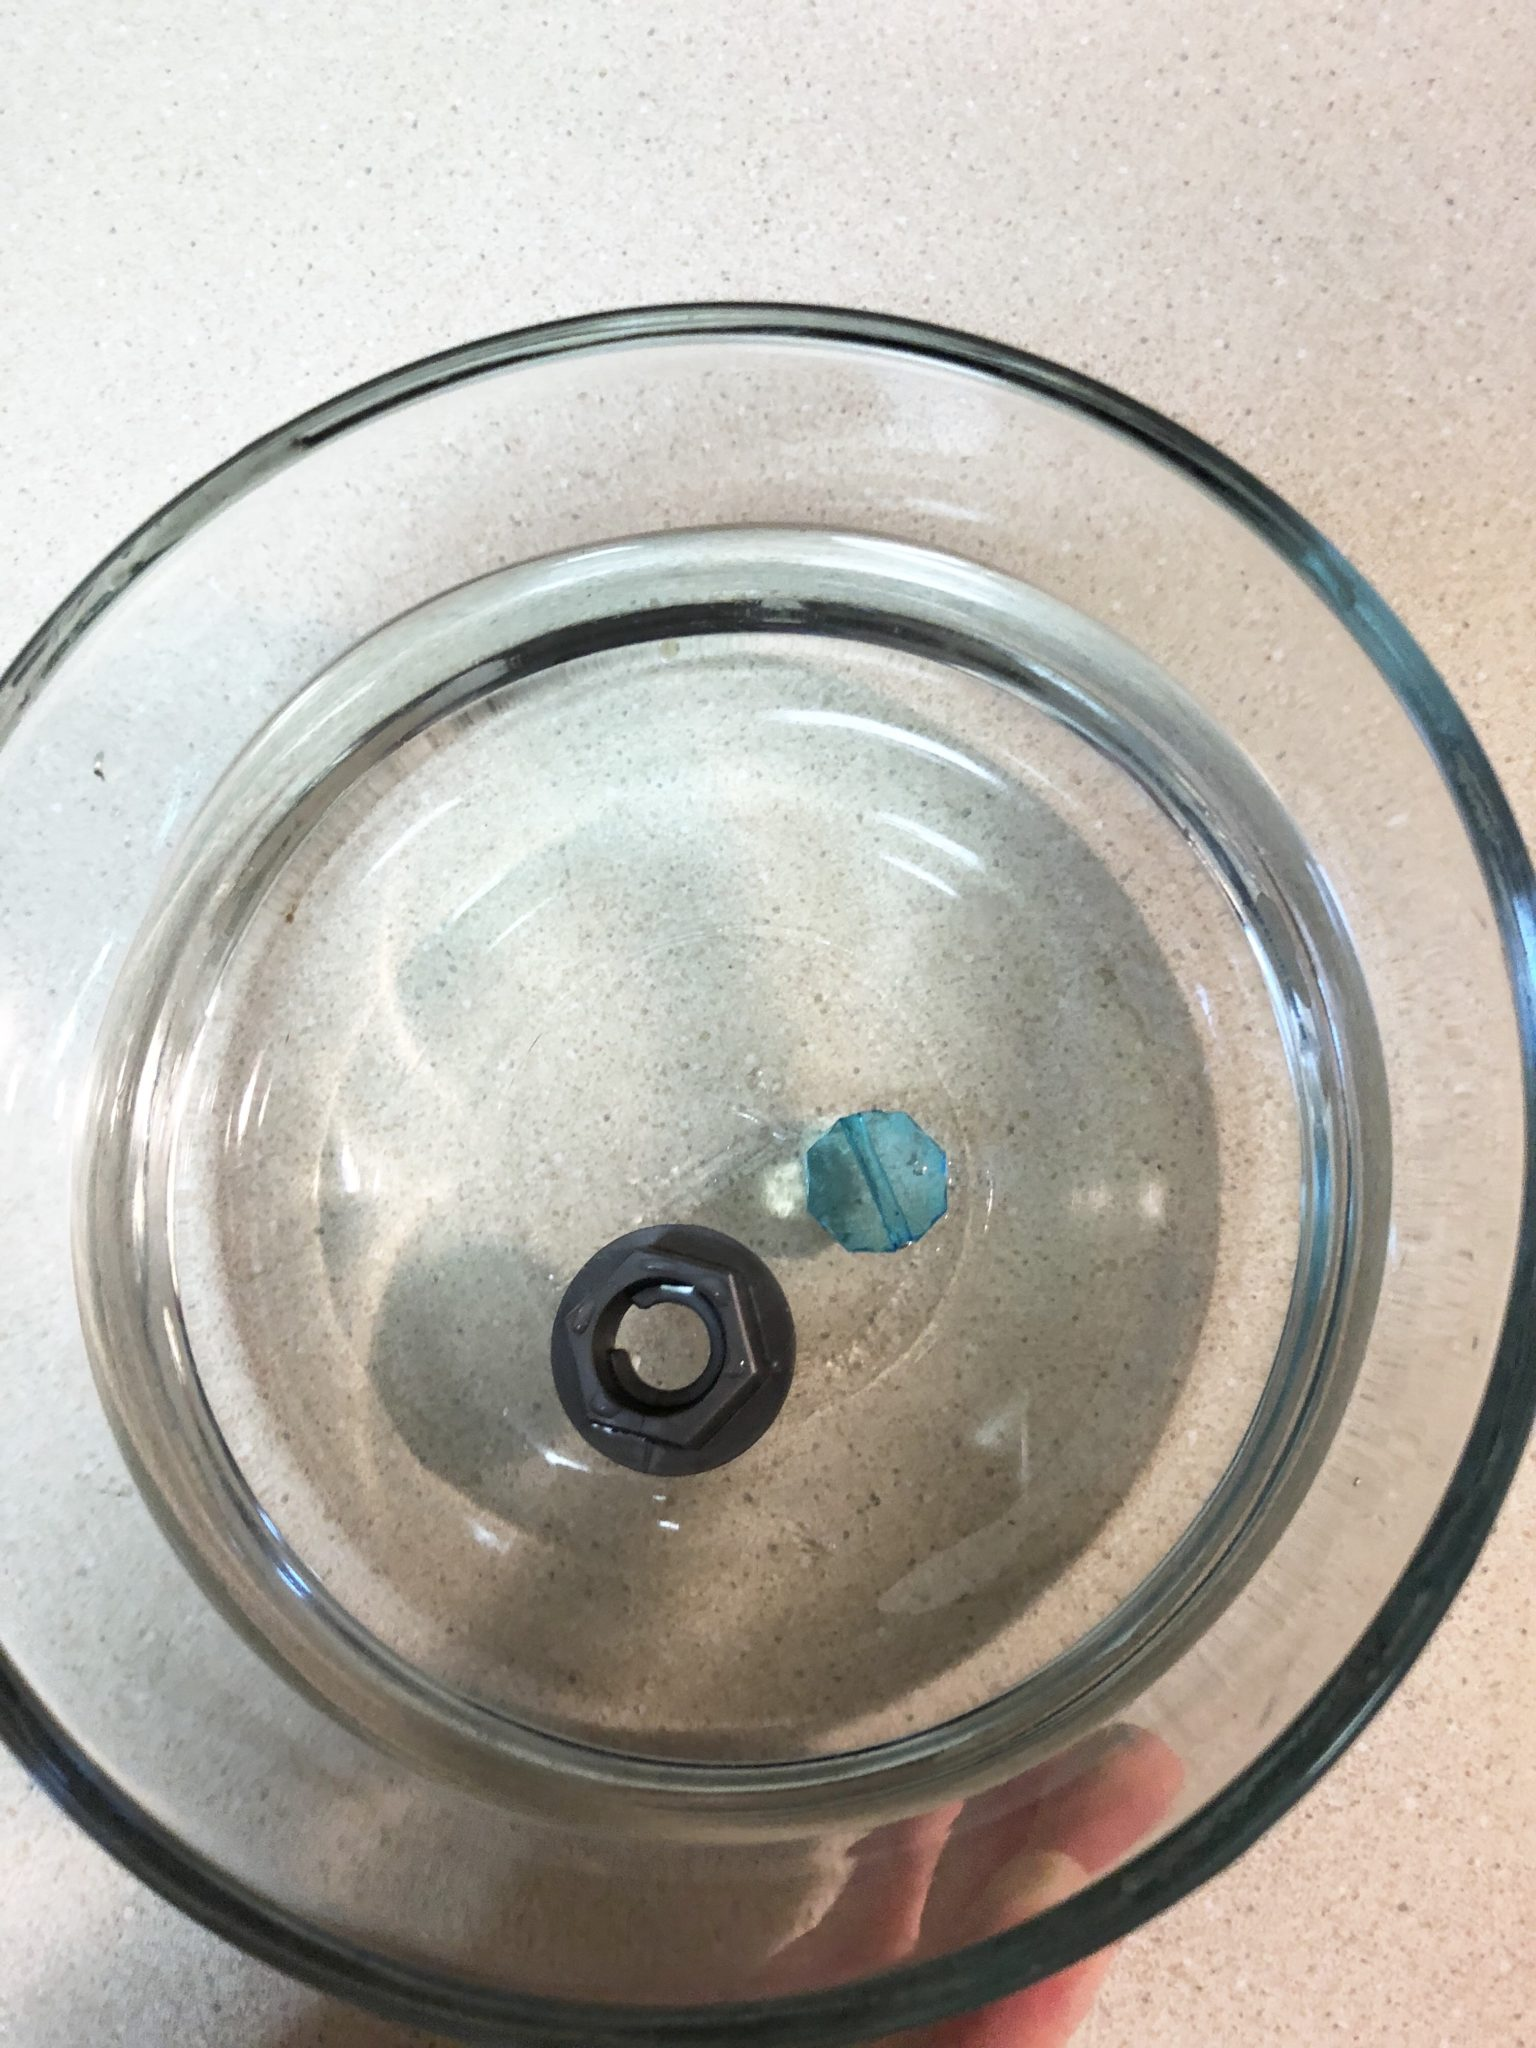 Plastic nut floating in water.